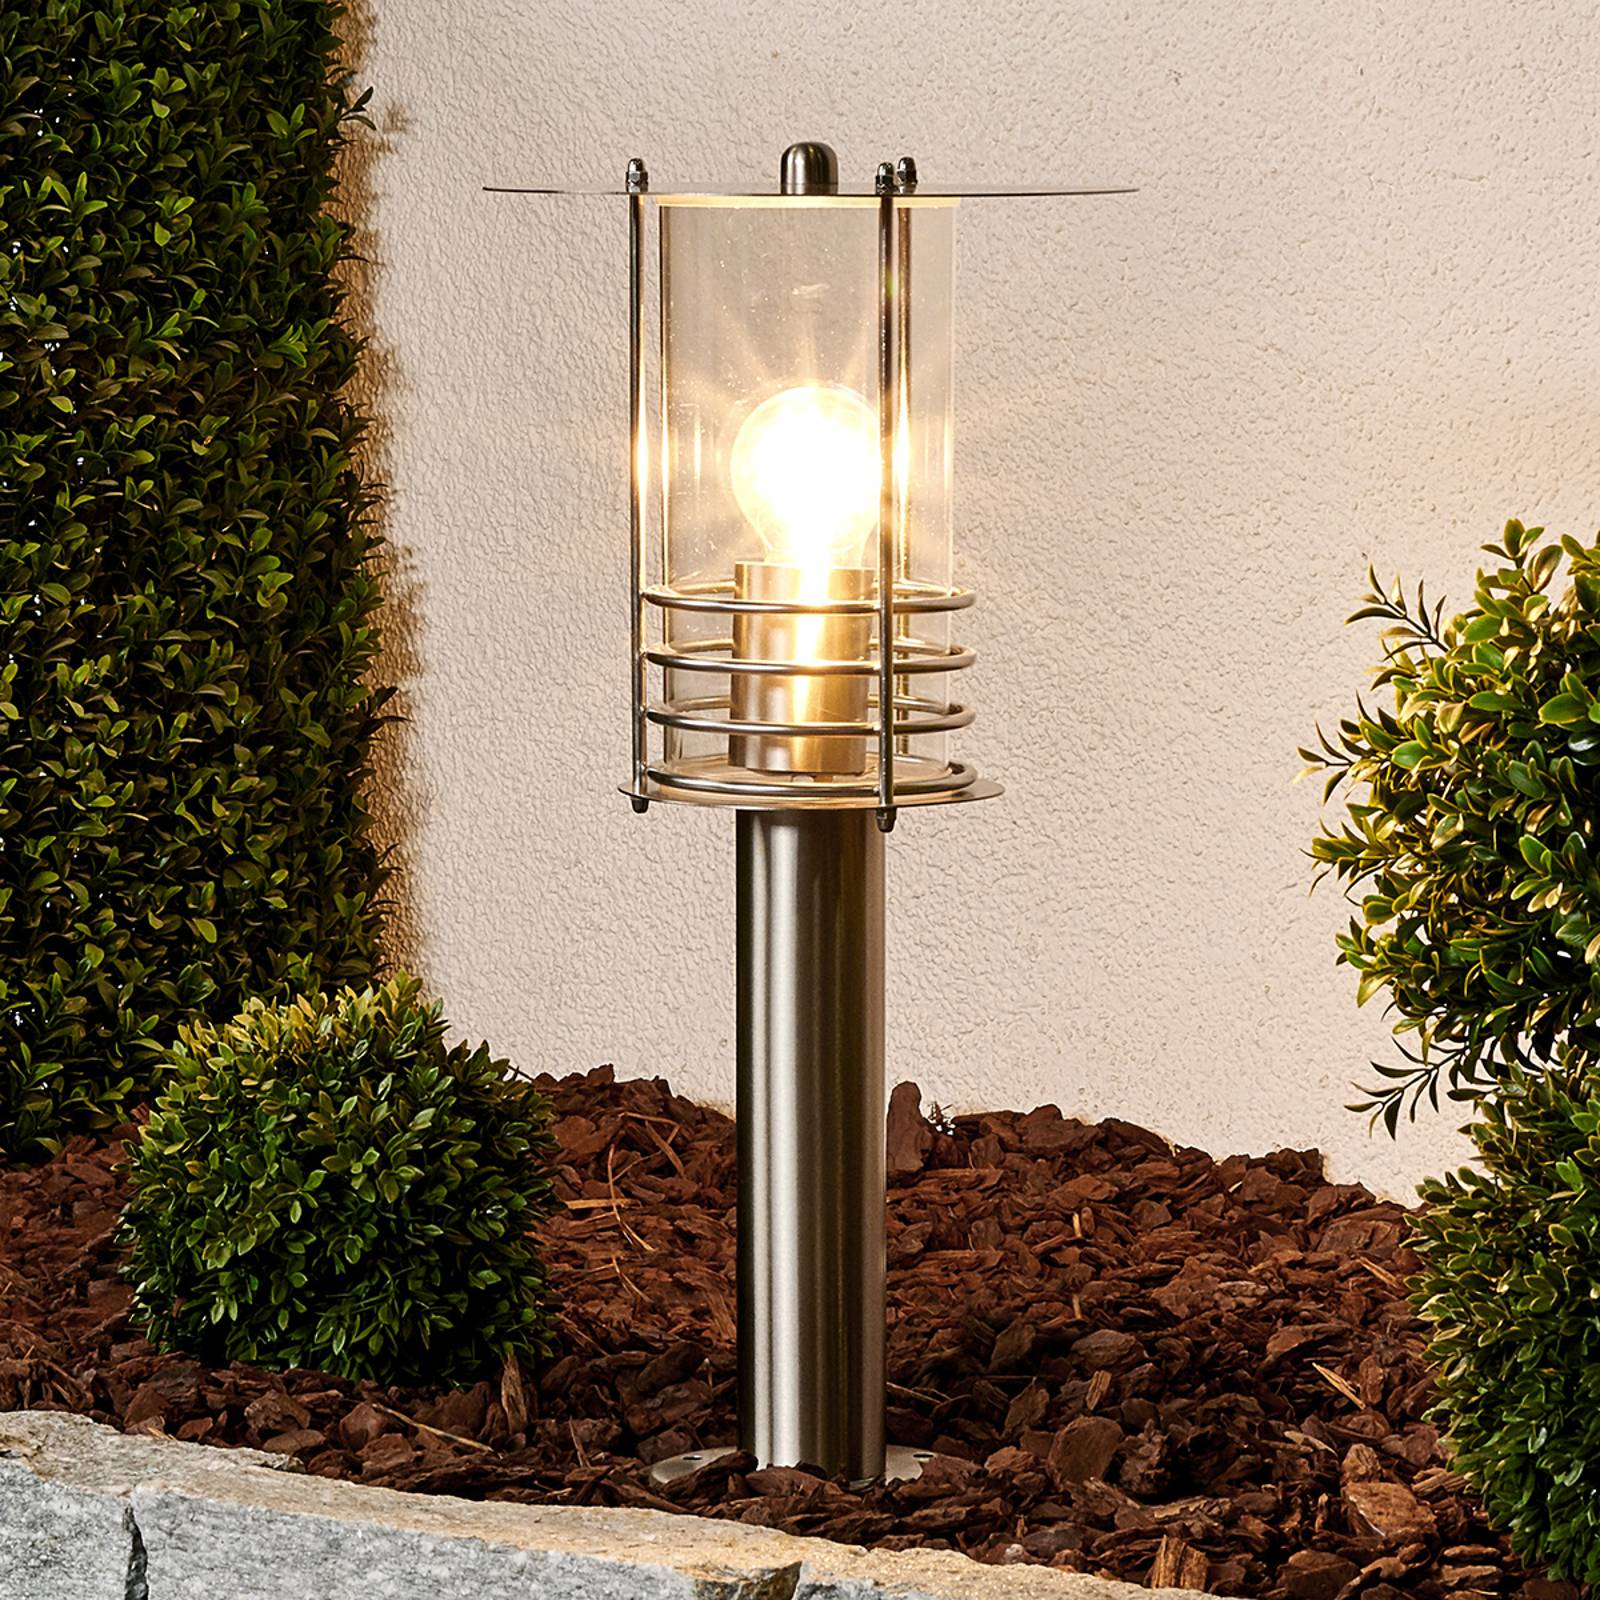 Elegant stainless steel pillar lamp Miko from Lindby